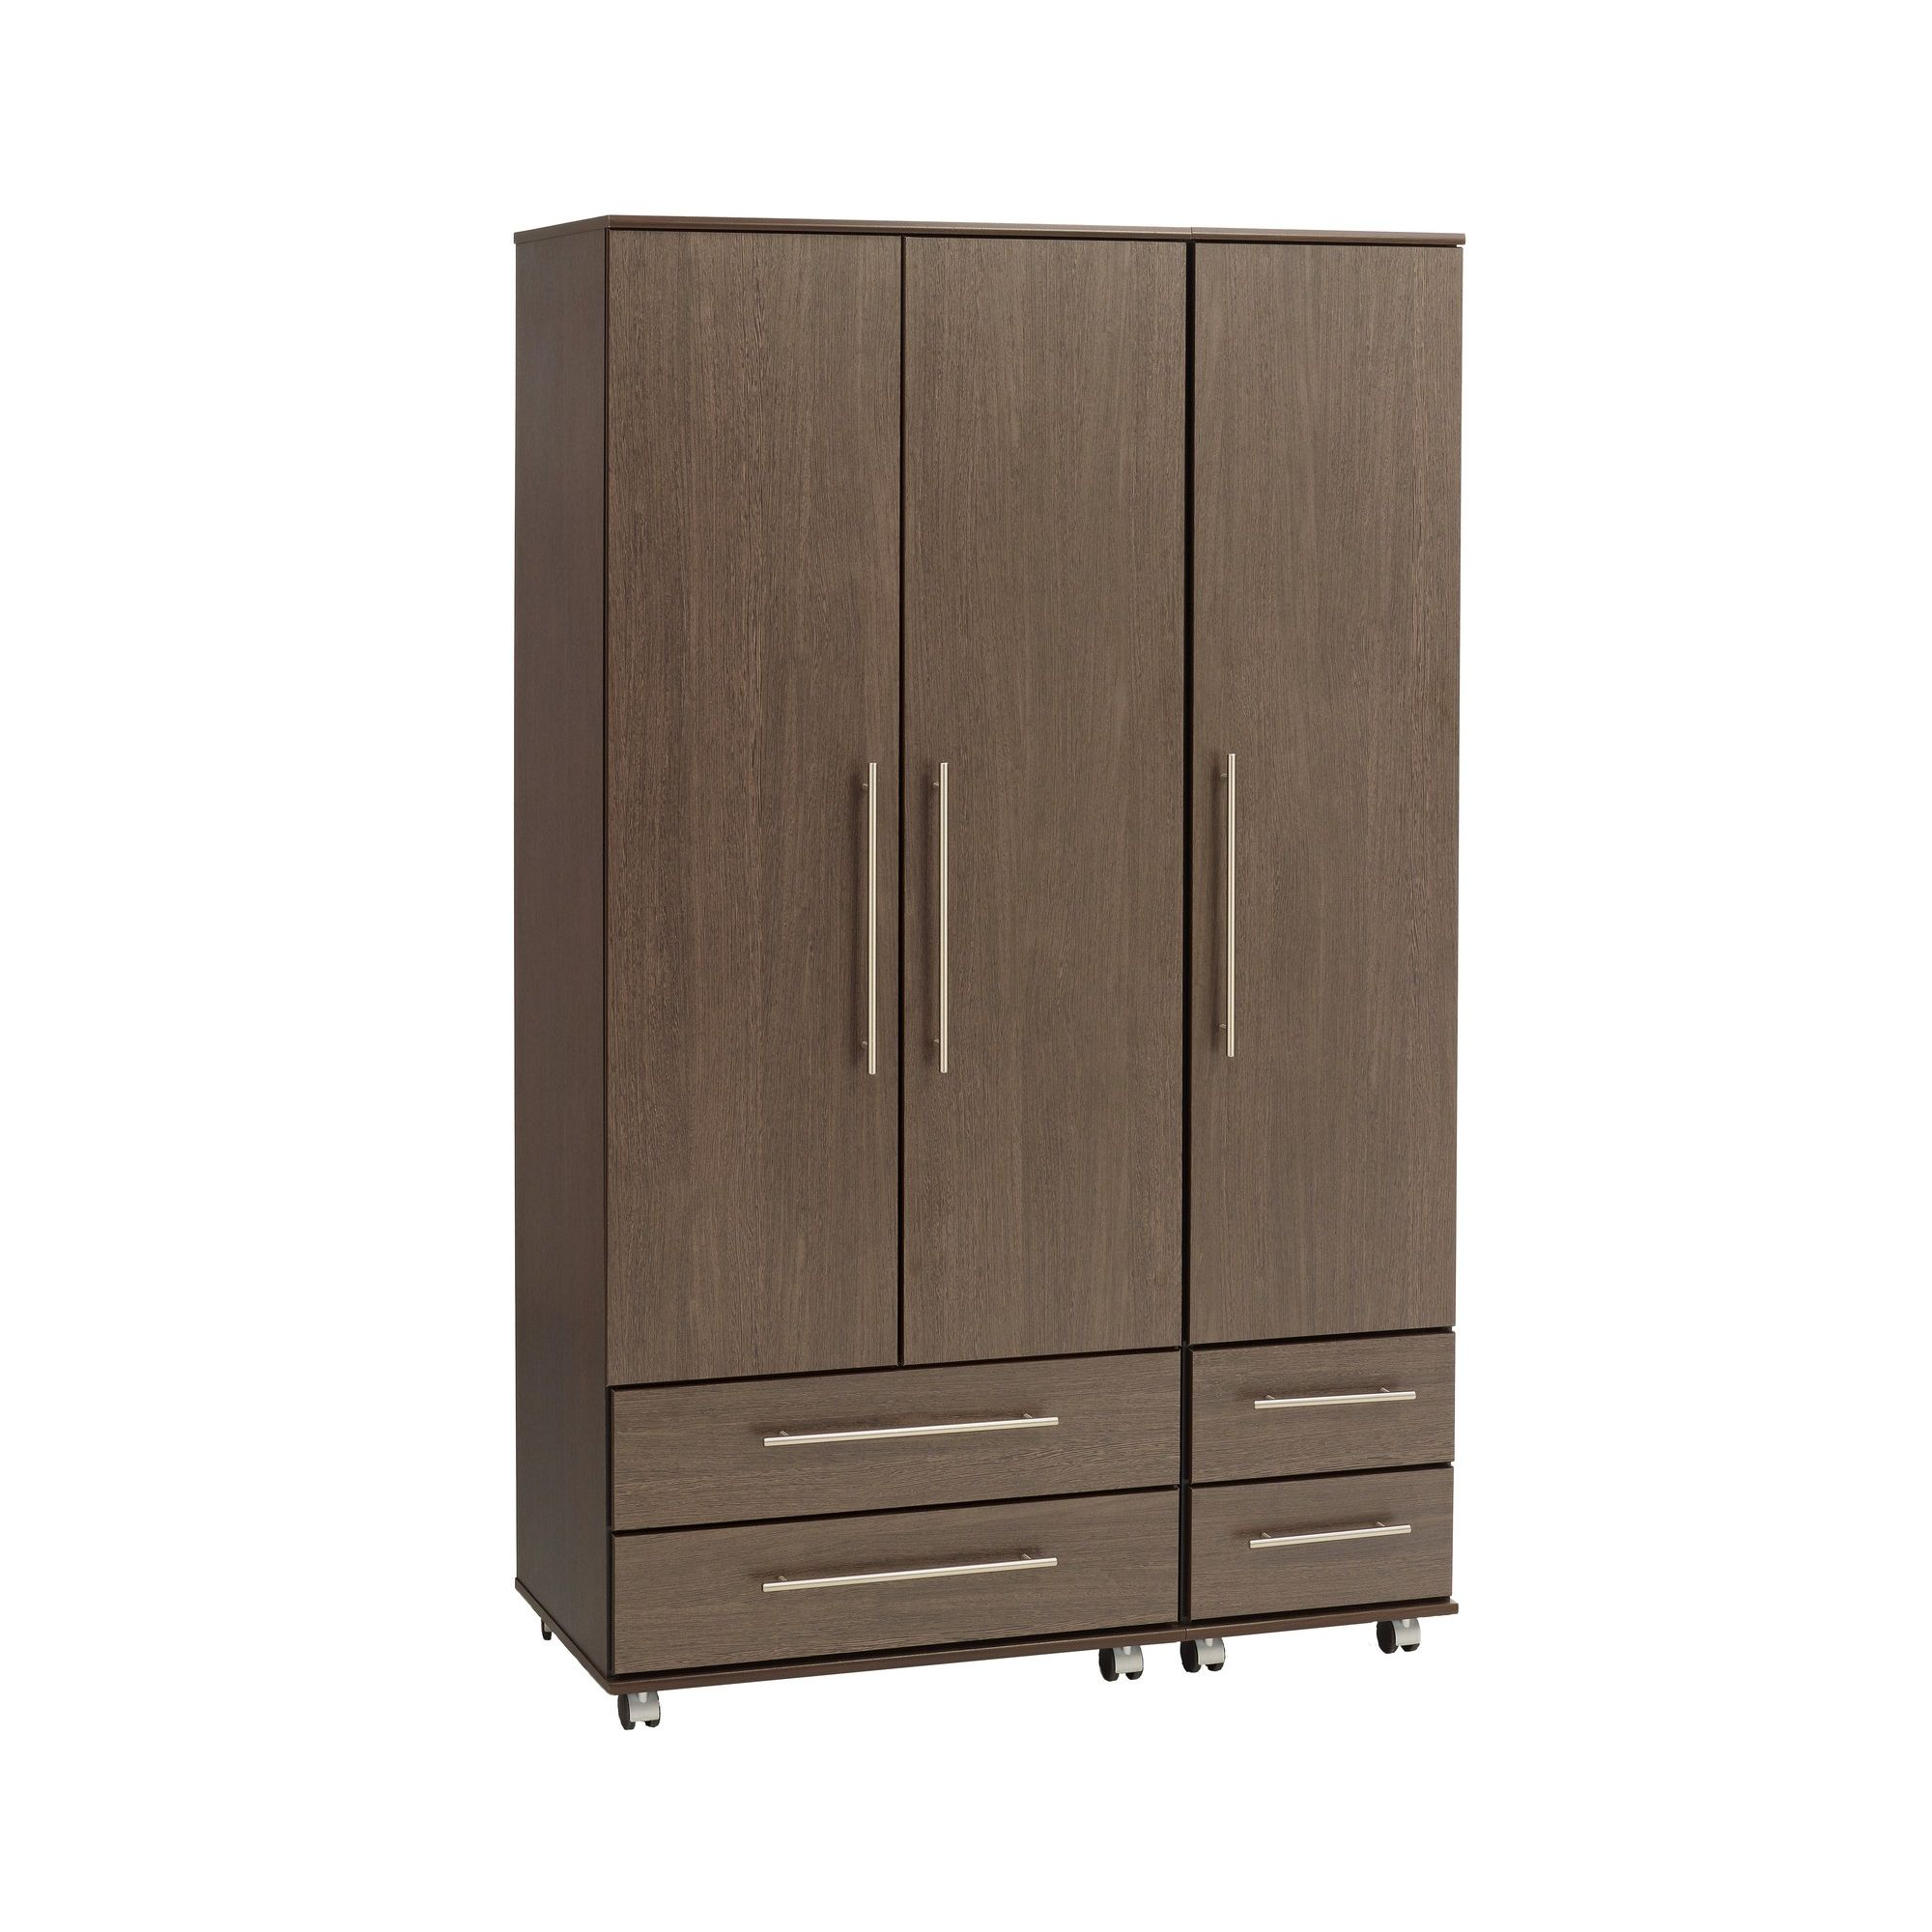 Ideal Furniture New York Triple Wardrobe with Four Drawers - Gloss Black at Tesco Direct